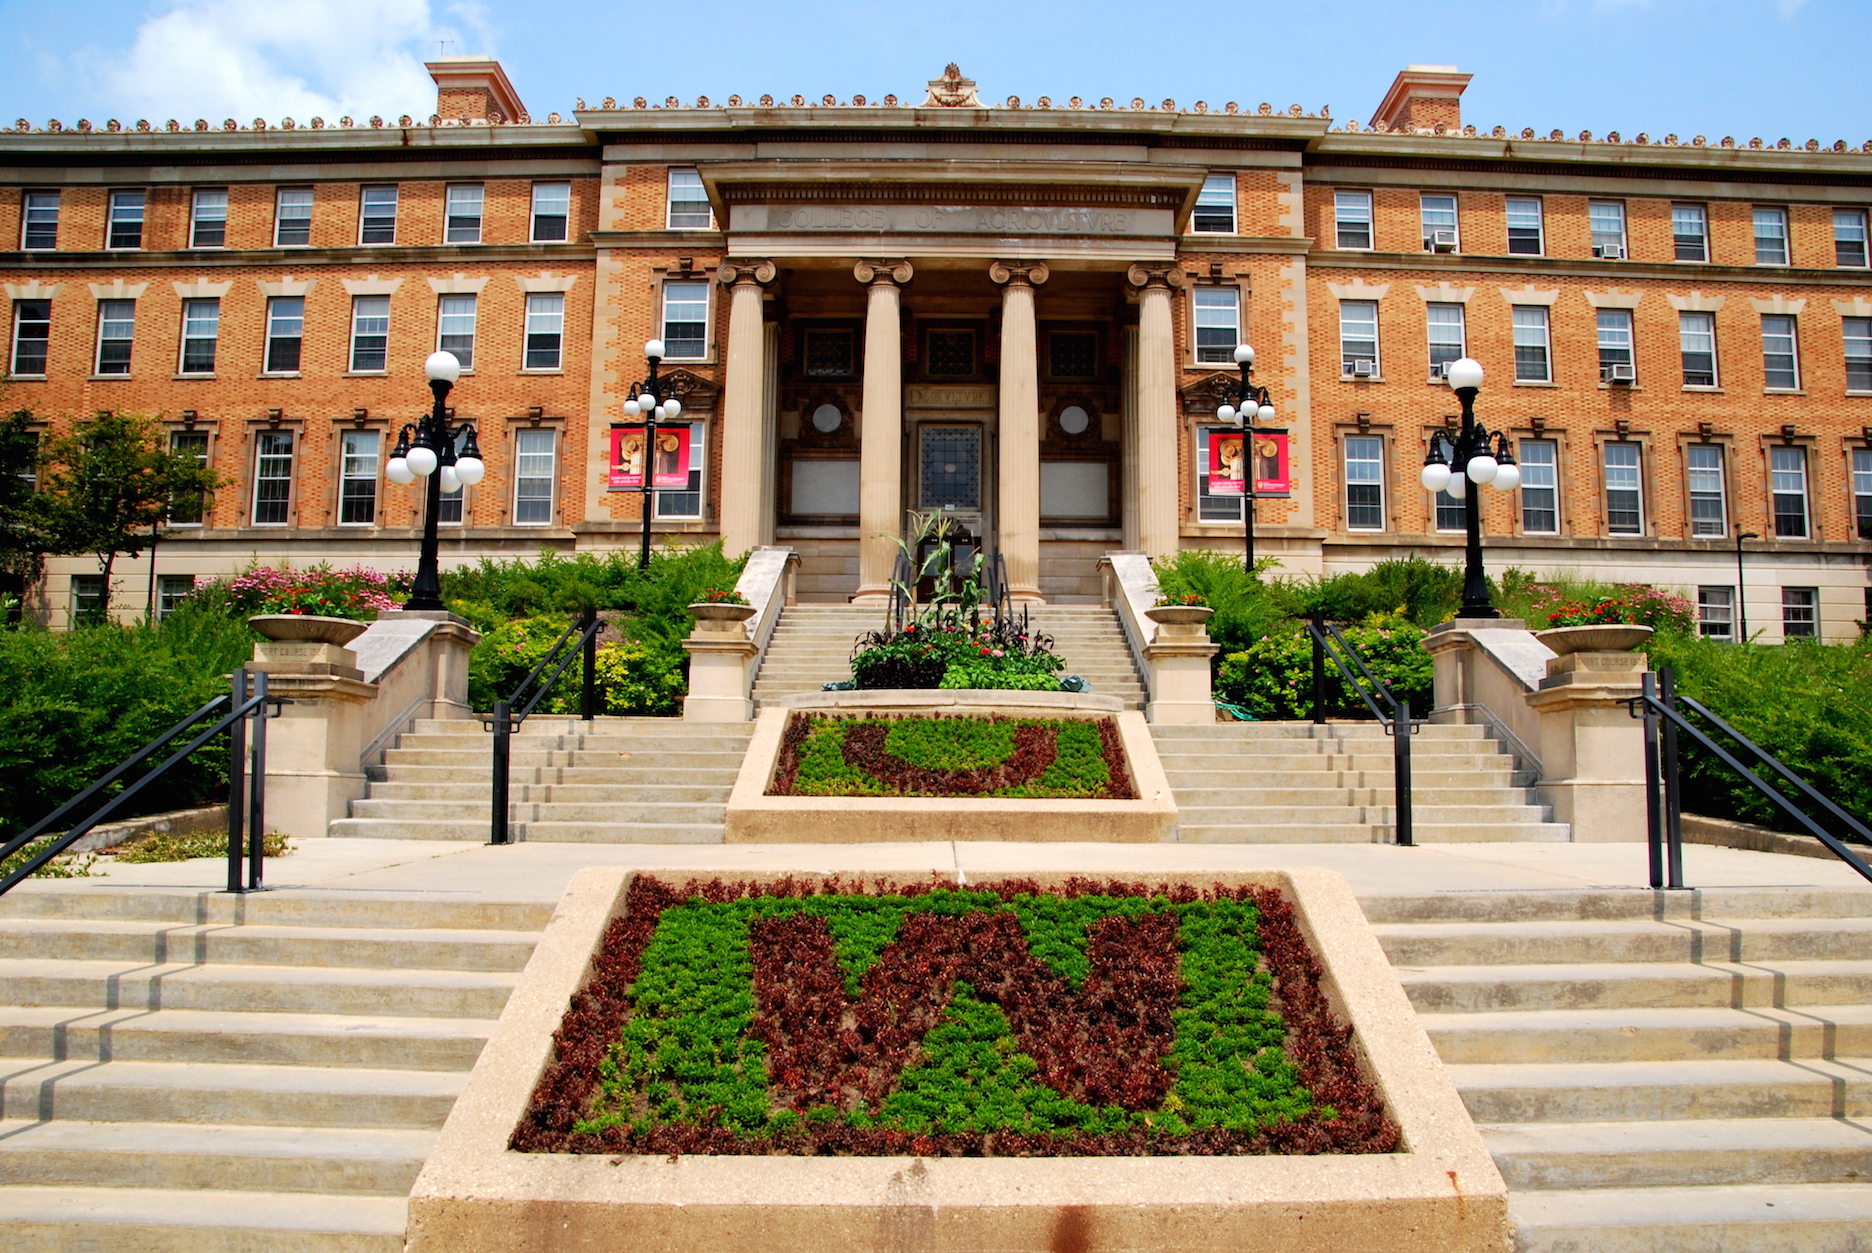 university of wisconsin, Madison.  photo:  youngryand /shutterstock